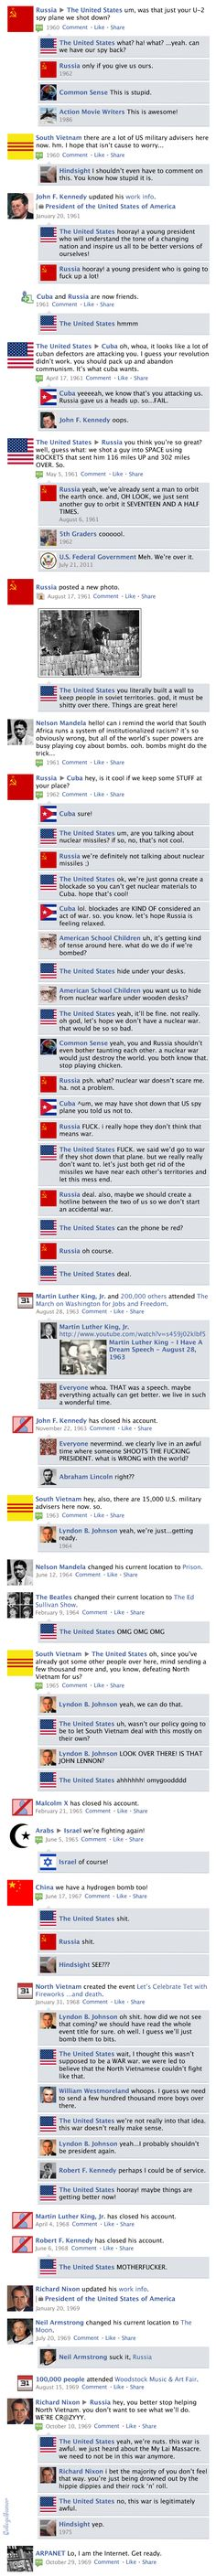 Facebook News Feed History of the World > 1960s